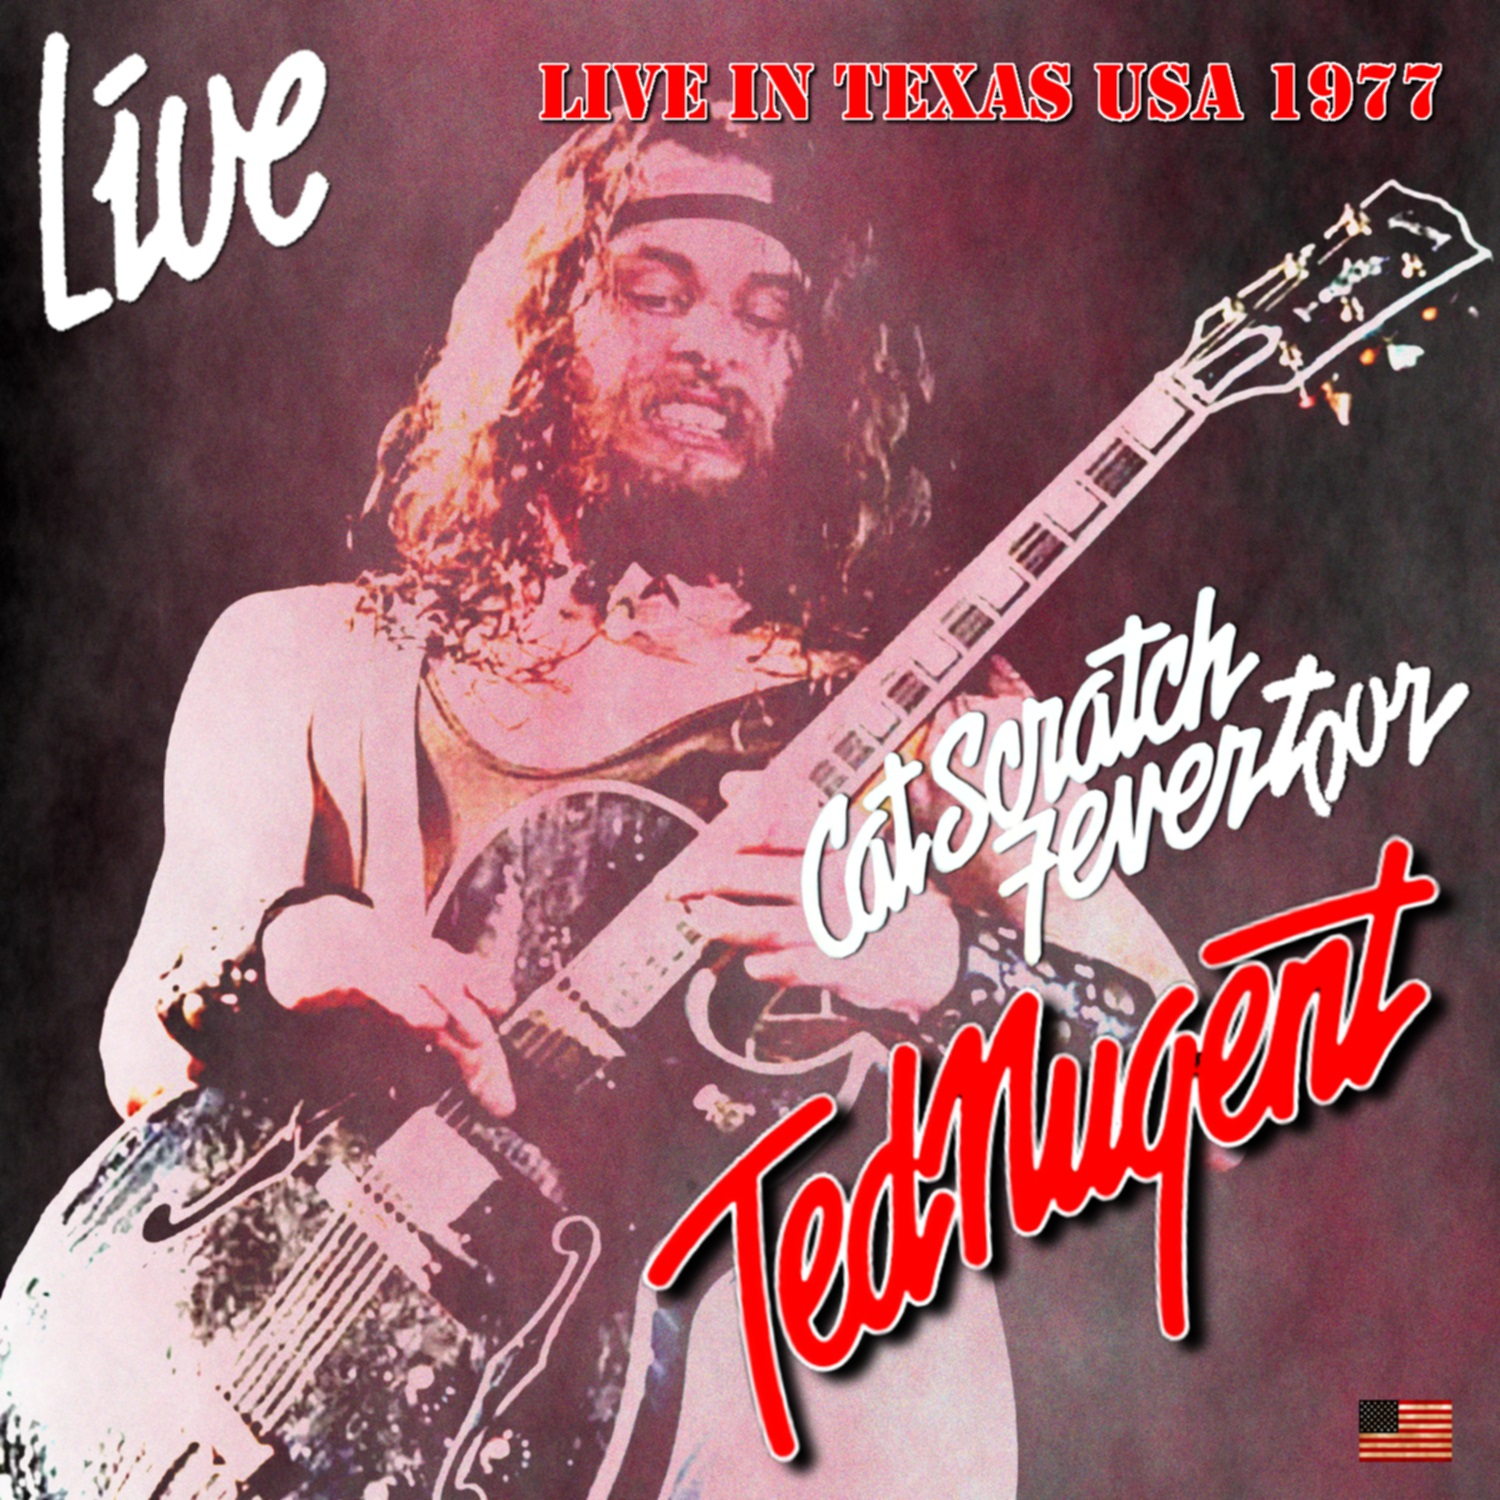 コレクターズCD Ted Nugent - Cat Scratch Fever US Tour 1977